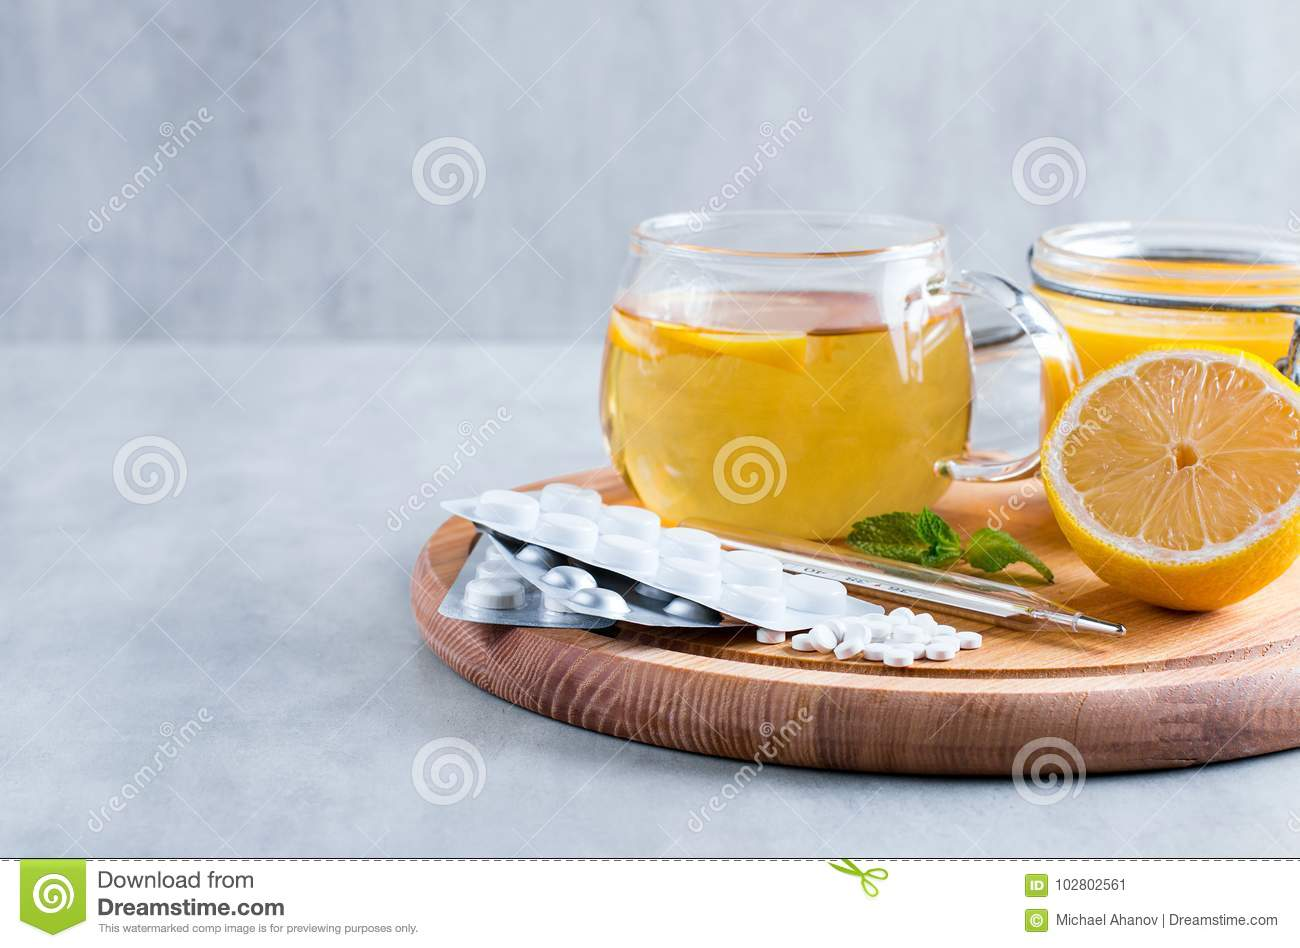 Natural ingredients for cough remedy on wooden table. Lemon, honey, tea, mint and tablets. Top view, space for copy.